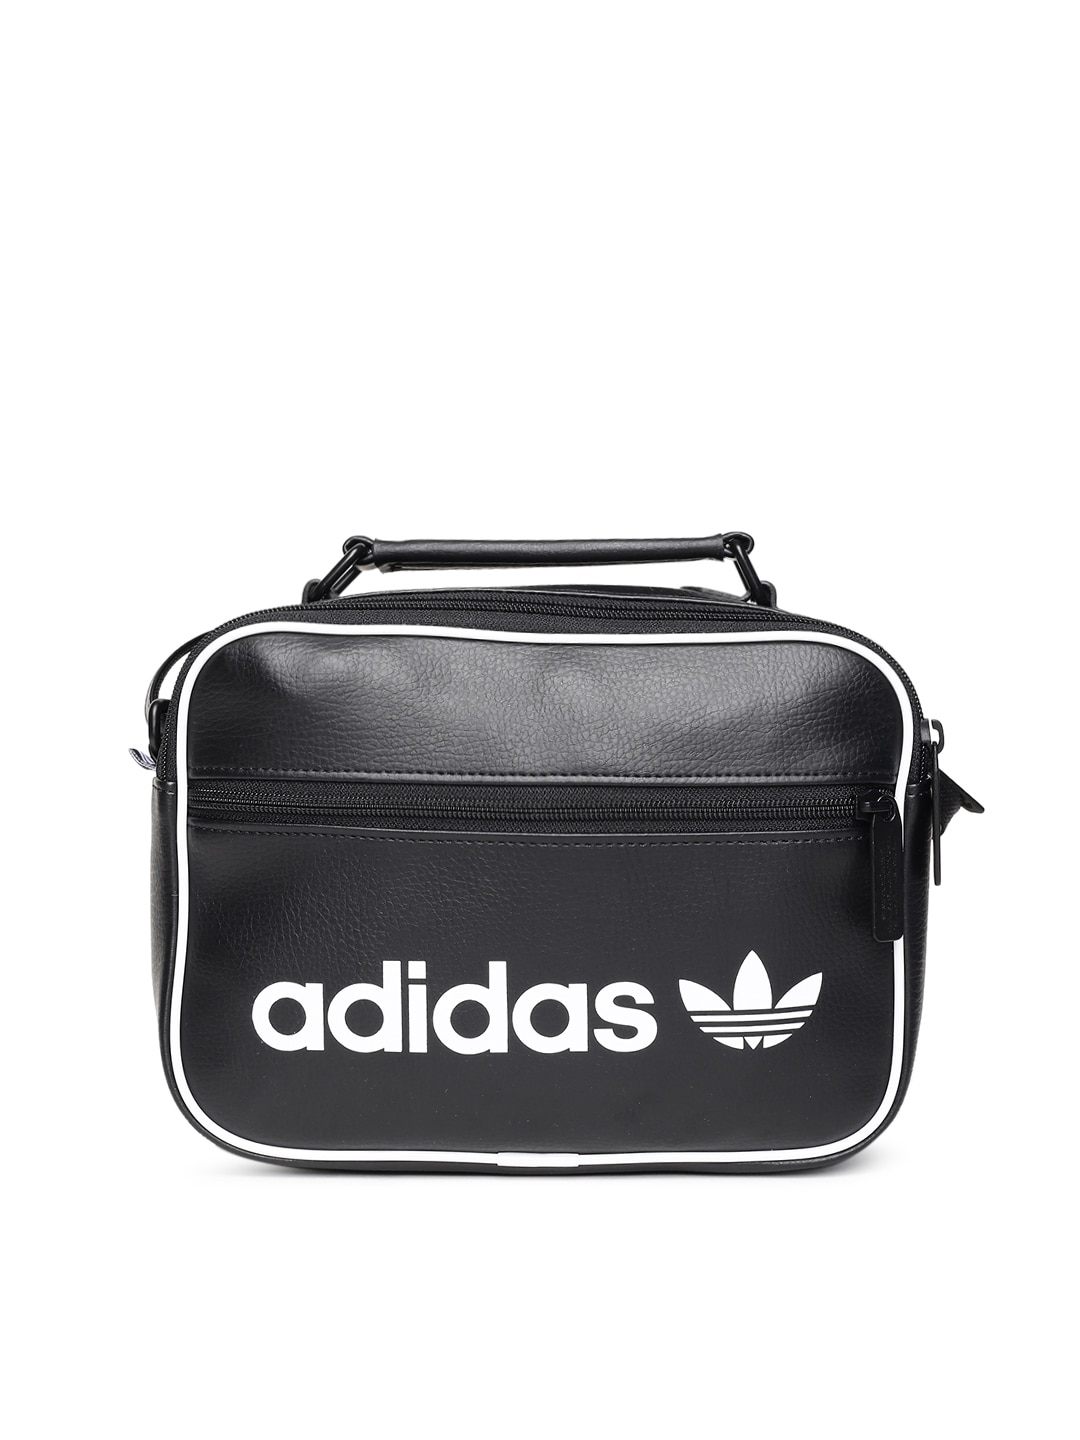 Adidas Messenger Bags - Buy Adidas Messenger Bags online in India